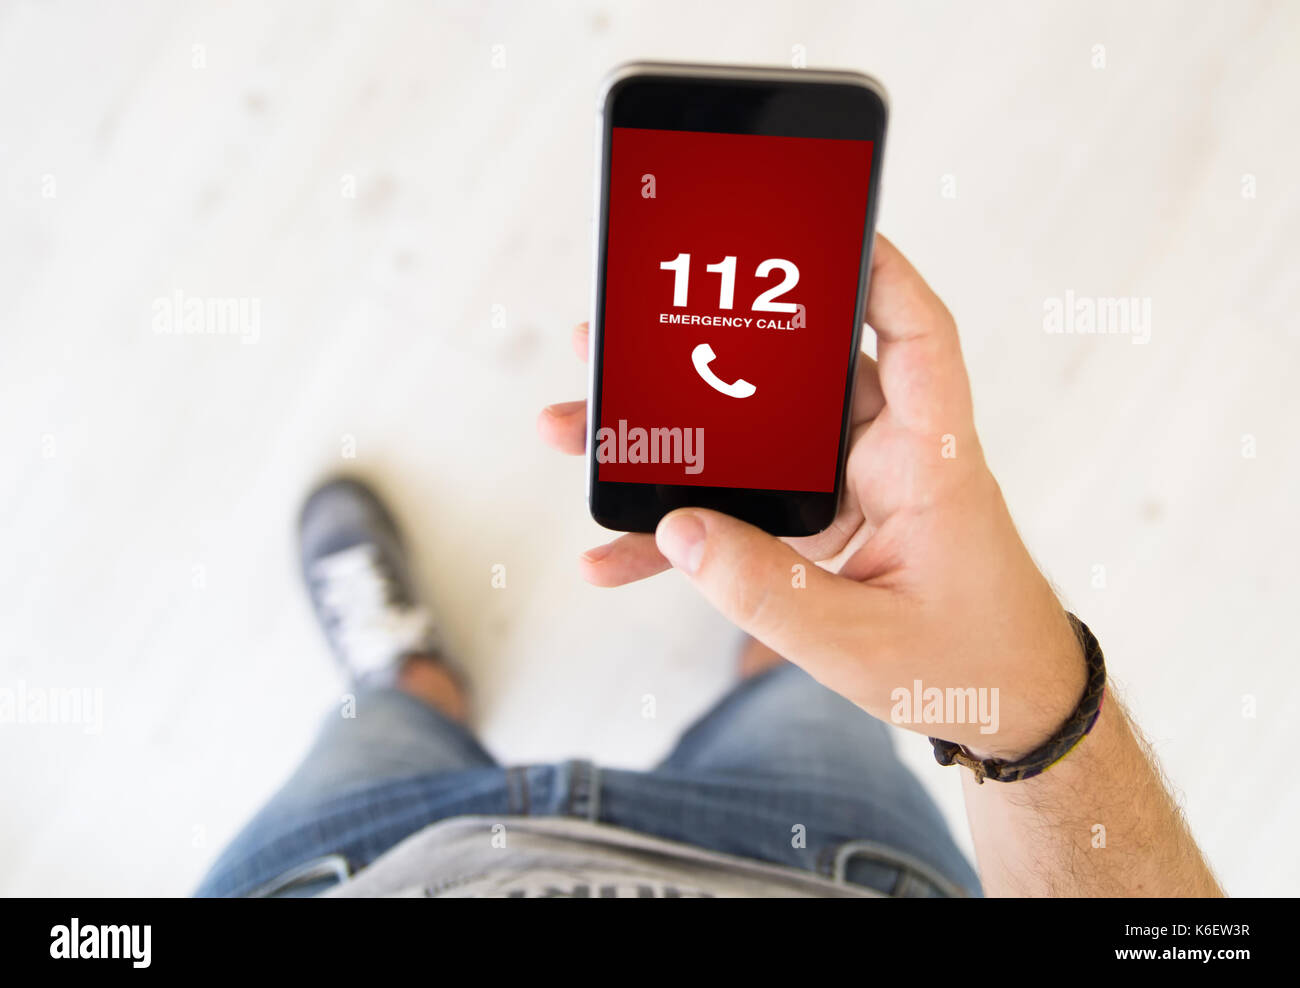 Phone Number 112 Stock Photos Amp Phone Number 112 Stock